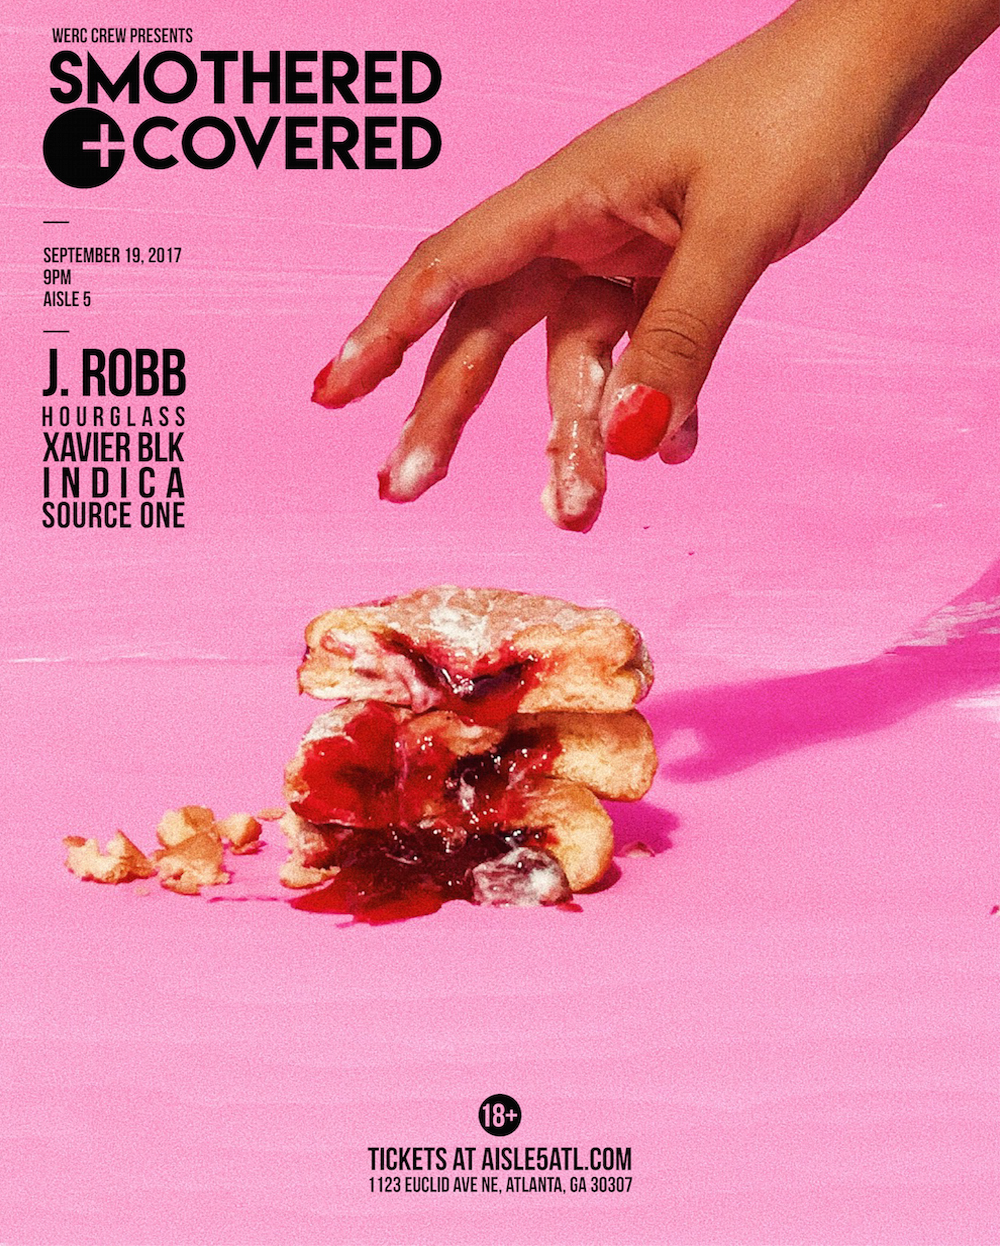 smothered&covered_jrobb_flyer.jpg